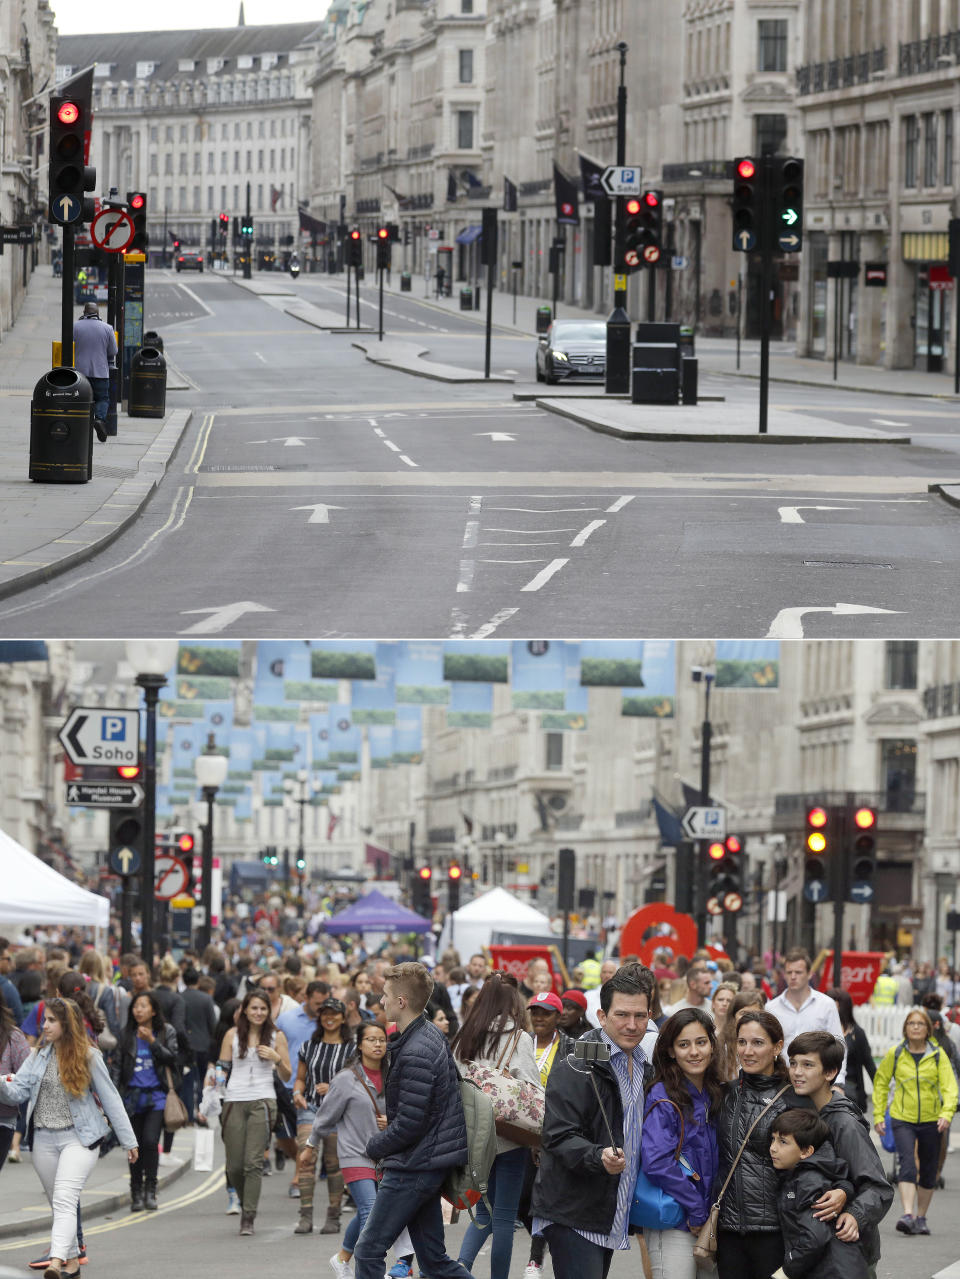 A combo of images shows people walking on a traffic free Regent street in London on Sunday, July 12, 2015 and an image of an empty street taken from the same angle on Wednesday, April 1, 2020. When Associated Press photographer Frank Augstein moved to London in 2015, what struck him most was the crowds. In years of covering political dramas, moments of celebration and tragedy and major sporting events, Augstein's photographs have captured the city's ceaseless movement: Pedestrians swarming over the Millennium footbridge spanning the River Thames. Travelers from the U.K. and continental Europe thronging St. Pancras railway station. Commuters following London transit etiquette by carefully ignoring one another on a crowded Tube train, or waiting patiently in a snaking bus queue. Augstein revisited those sites in recent days after Britain — like other countries around the world — went into effective lockdown to stem the spread of the new coronavirus. (AP Photo/Frank Augstein)